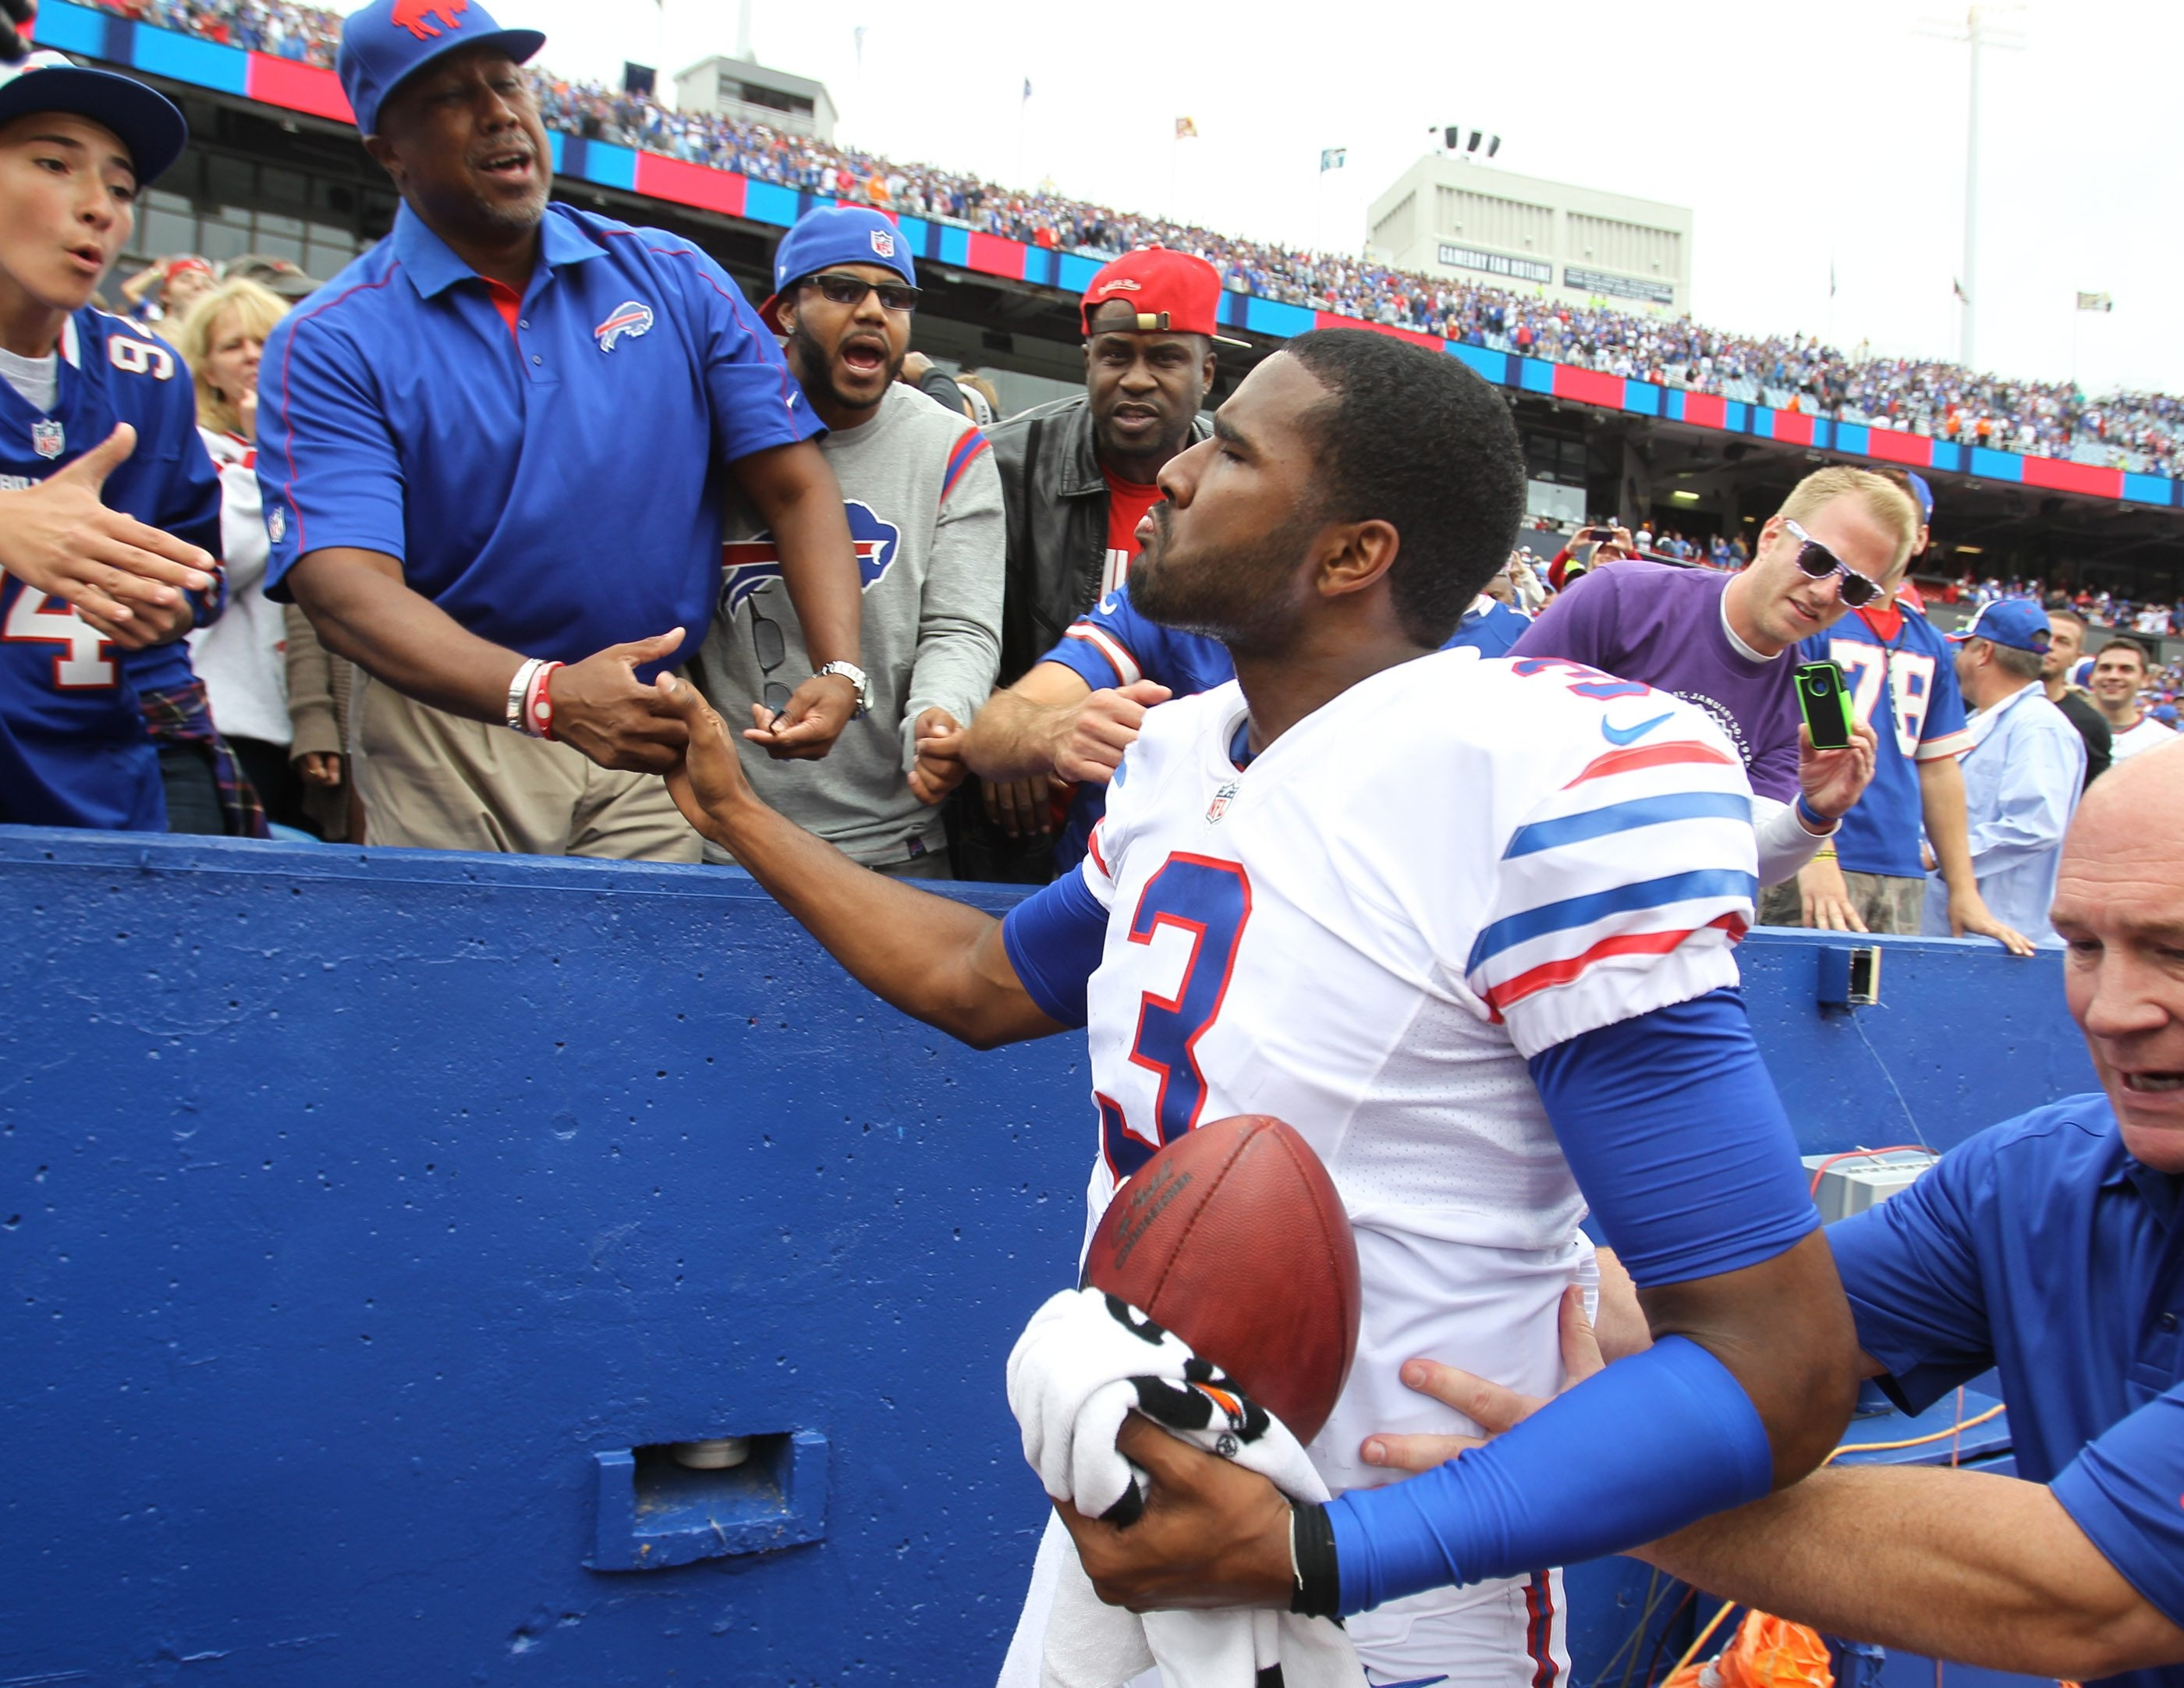 Buffalo Bills quarterback EJ Manuel greets his dad after last Sunday's win against the Carolina Panthers. Inset, from left,  Fred Jackson, C.J. Spiller and Robert Woods.